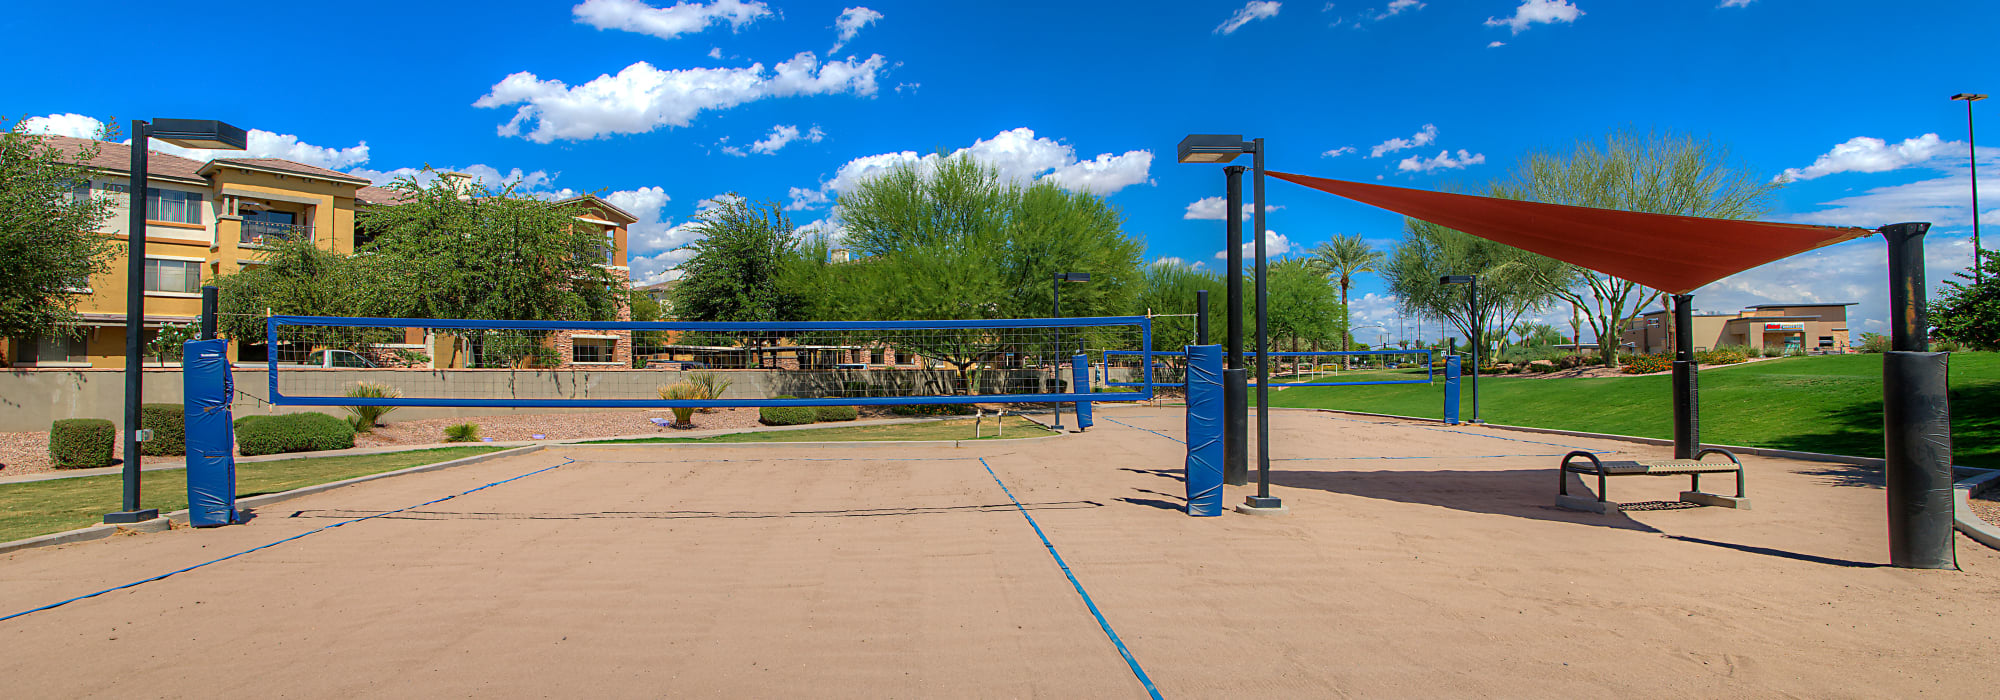 Volleyball court at Azul at Spectrum in Gilbert, Arizona